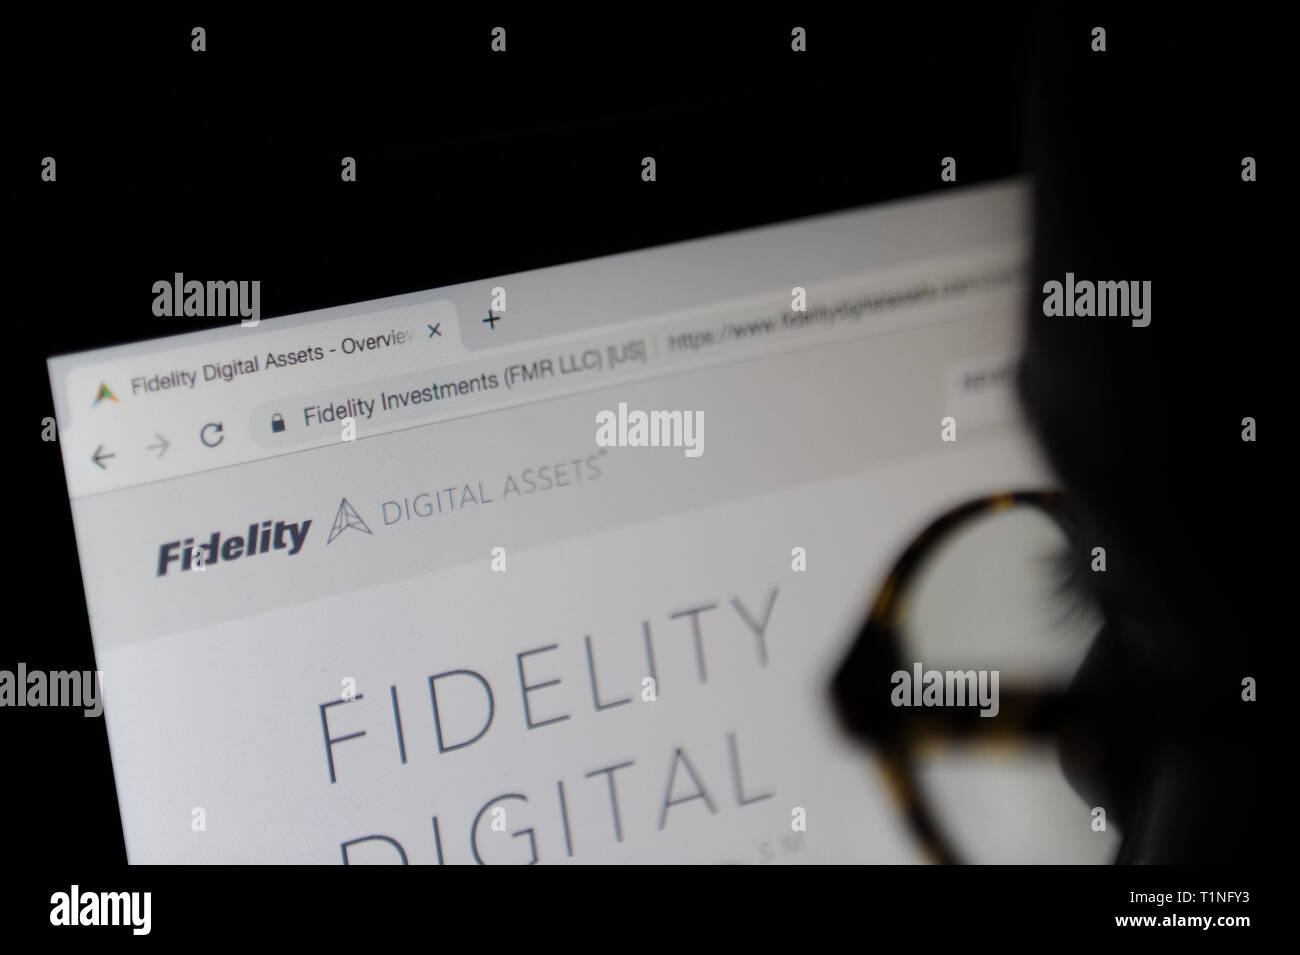 Fidelity Stock Photos & Fidelity Stock Images - Alamy